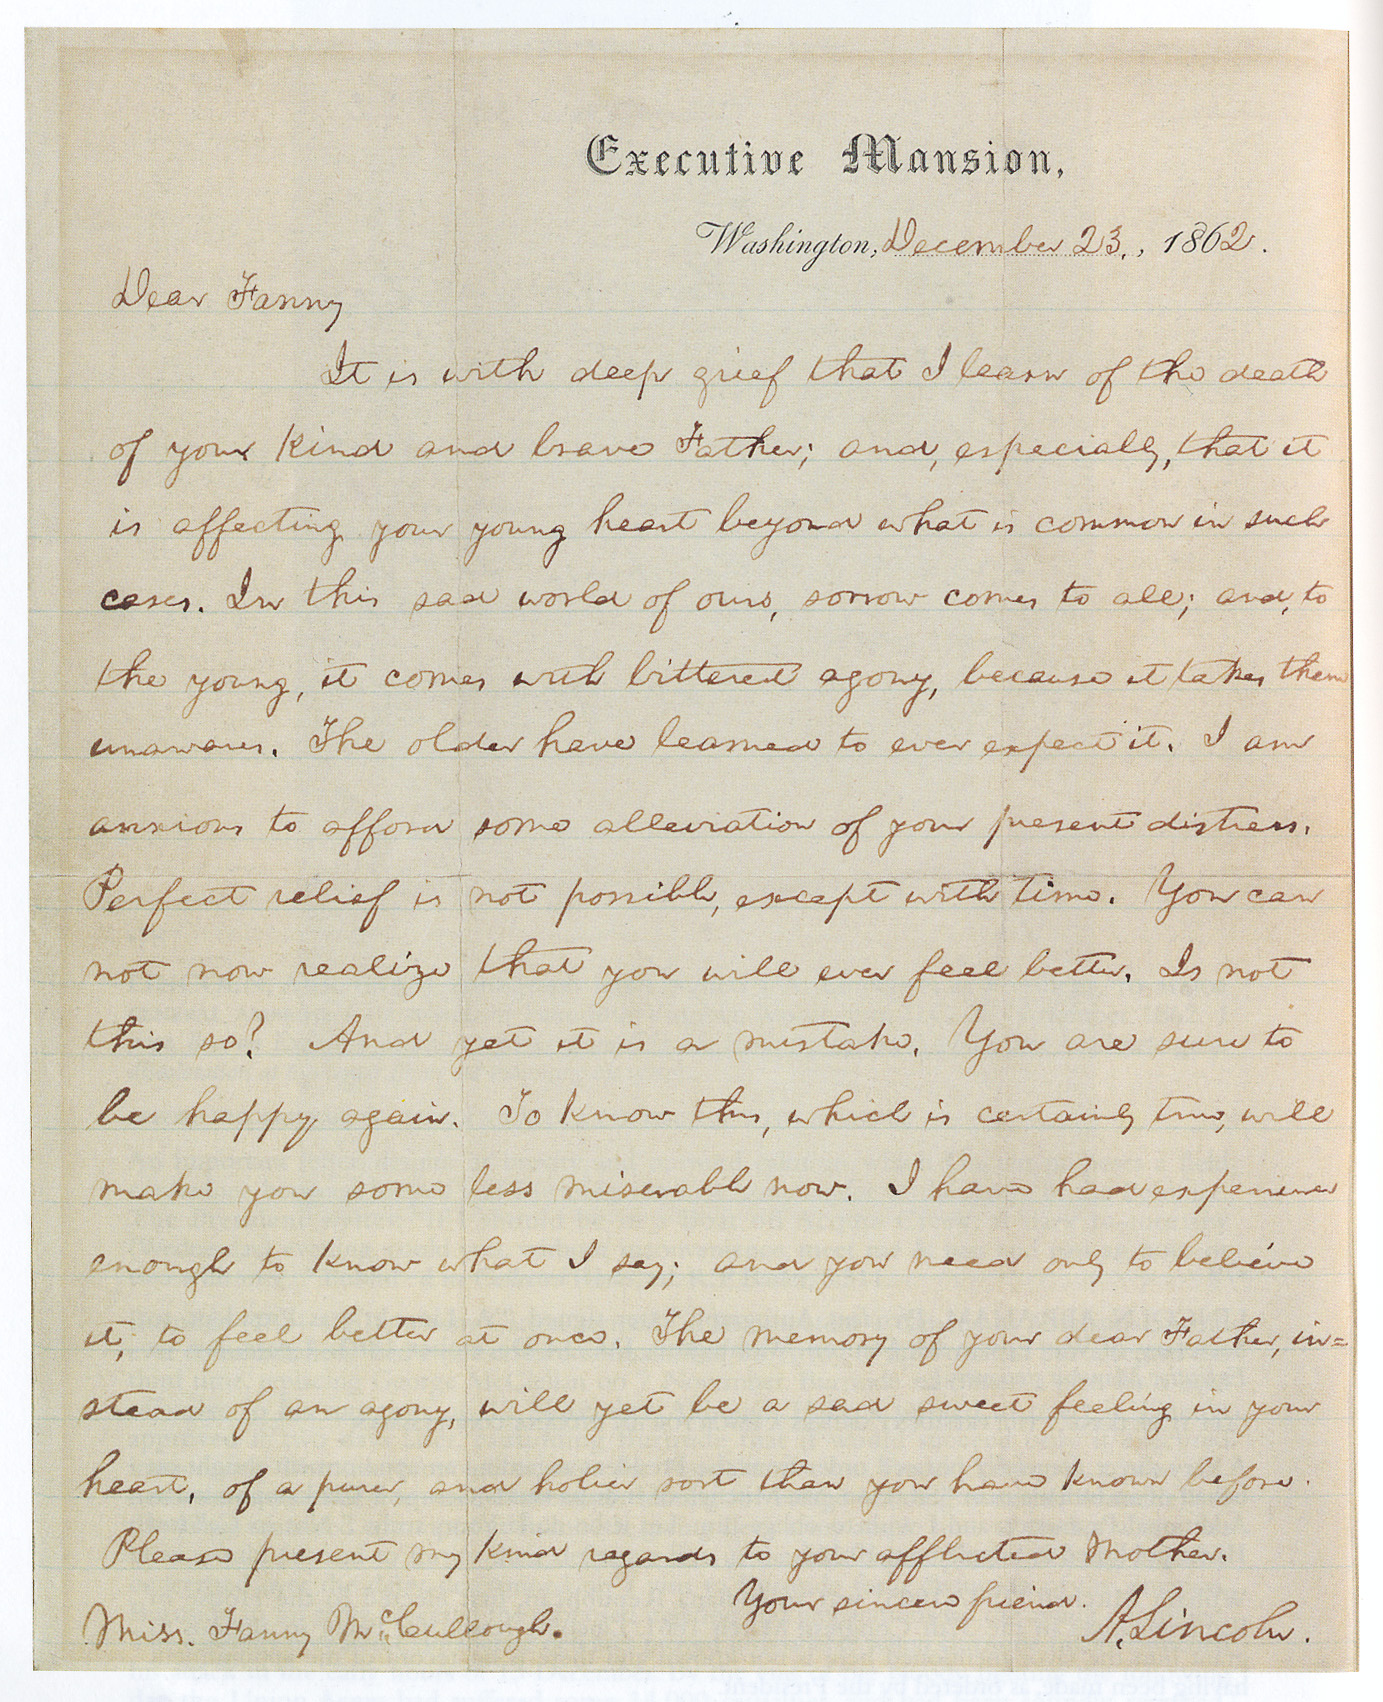 Abraham Lincoln's Famous Civil War Condolence Letter to Young Fanny McCullough About Loss and Memory